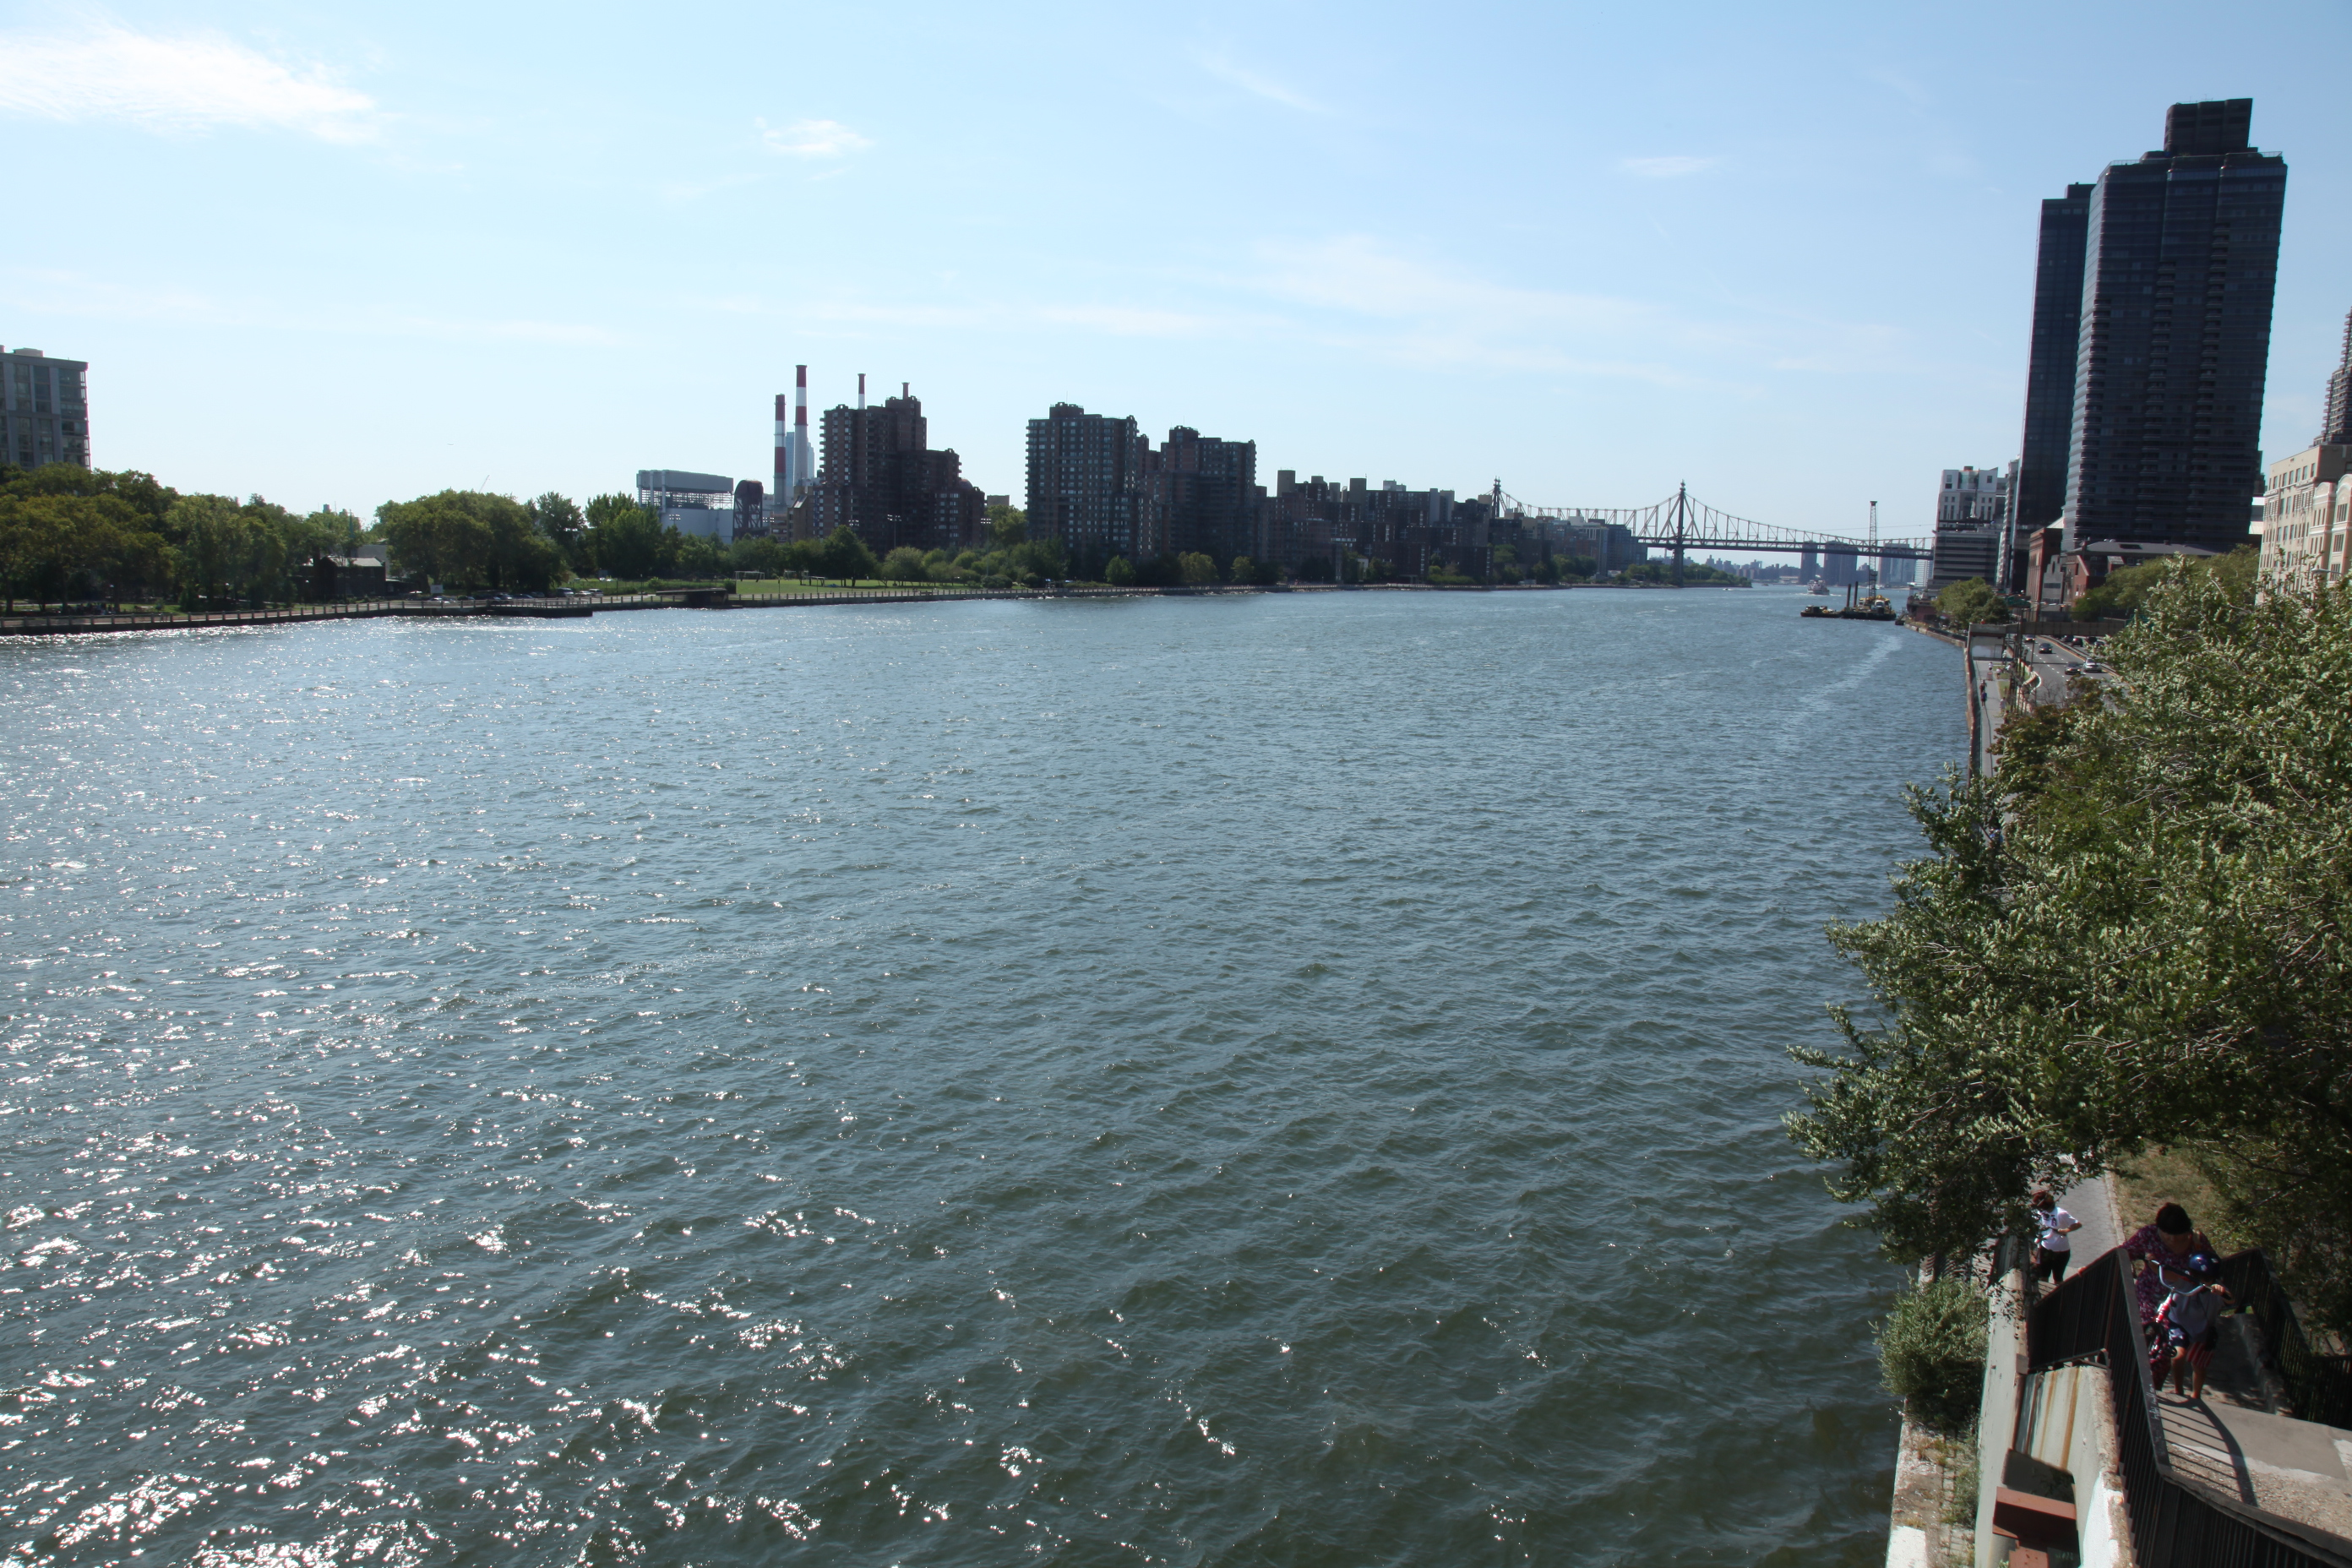 A view down the river from East 81st Street